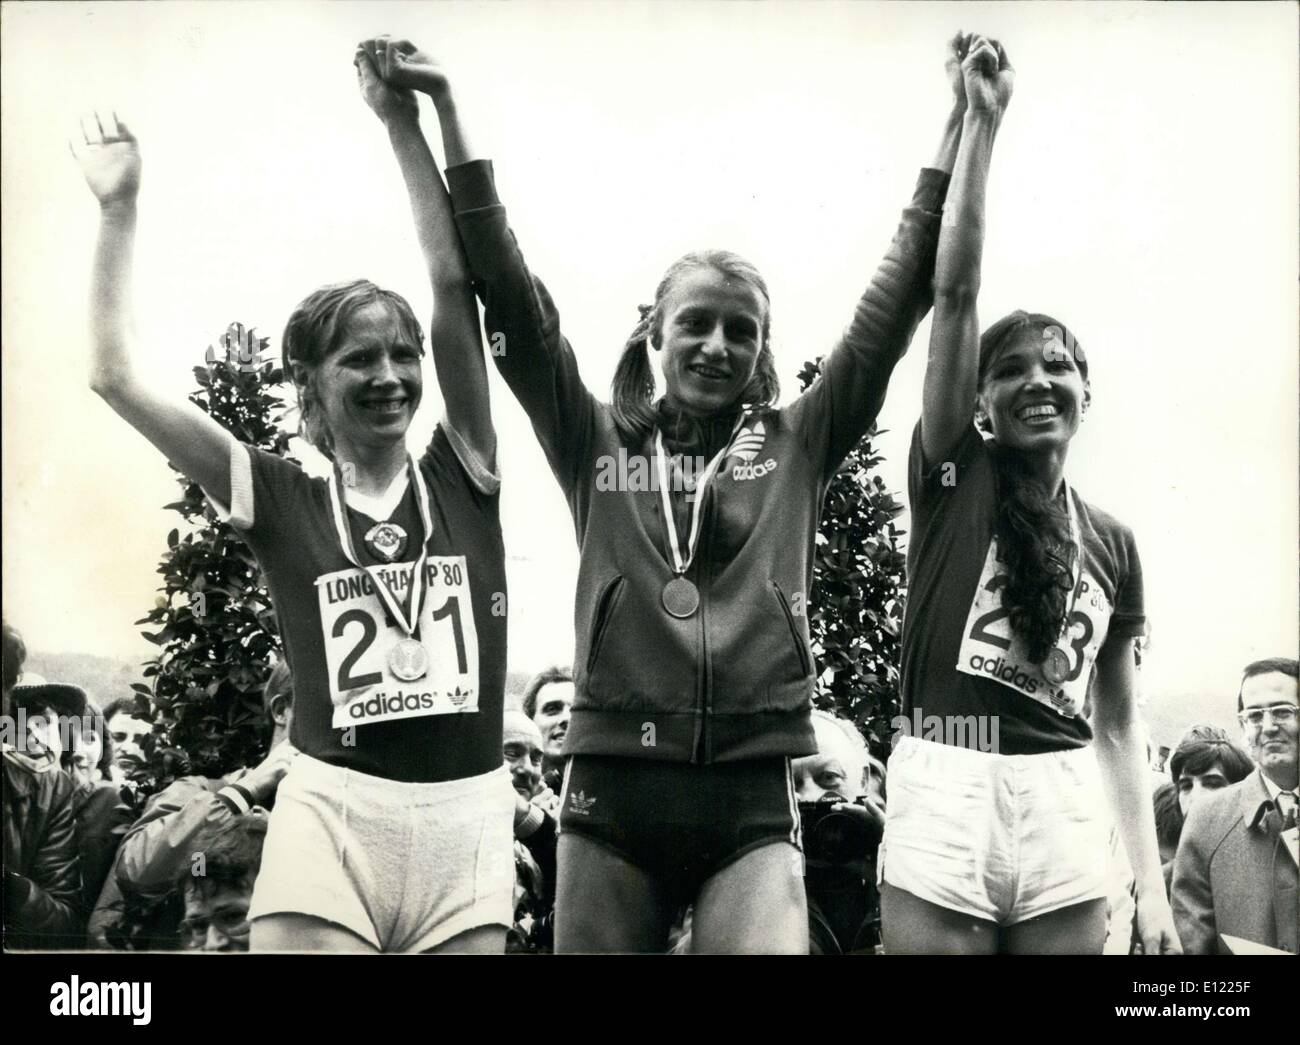 Mar. 10, 1983 - On the podium, left to right: Soviet Union's Irina Bondartsuk (2nd), Norway's Grete Waitz (1st), and another Soviet, Elen Sipatova (3rd) - Stock Image